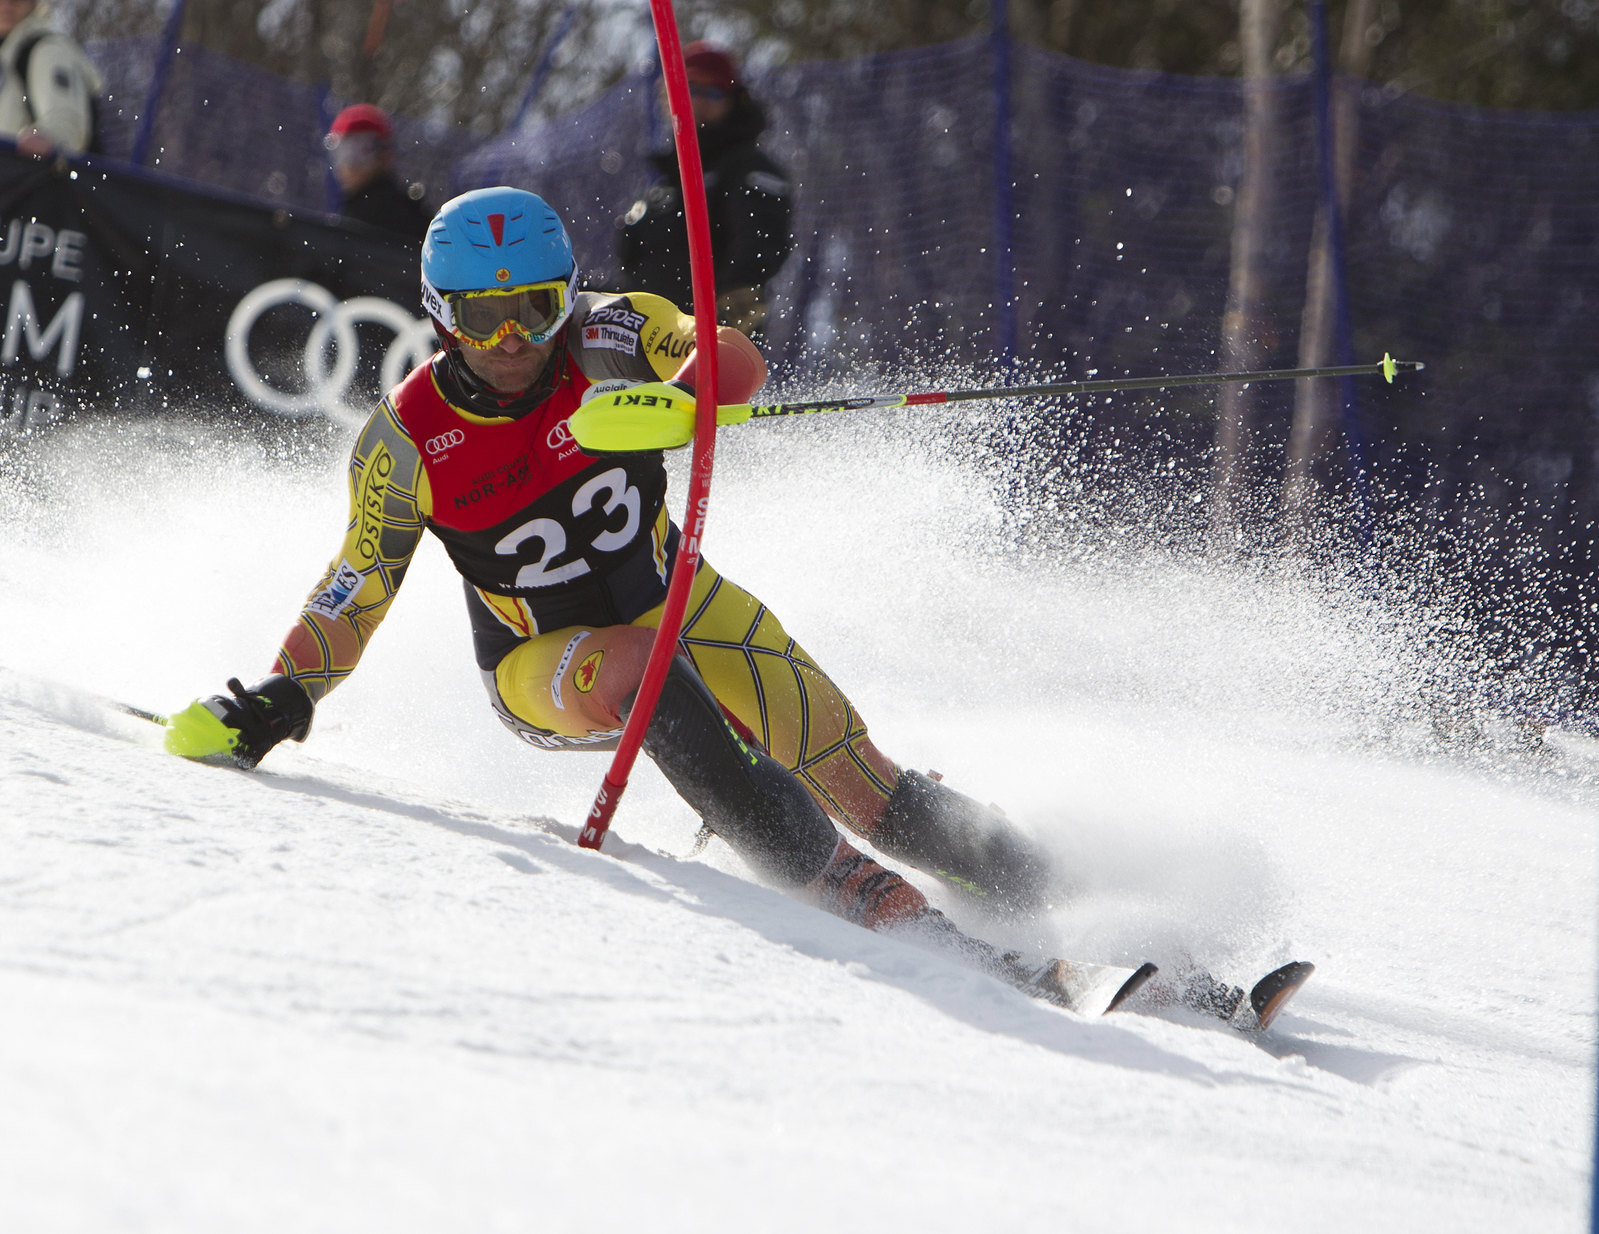 Mike Janyk during the Audi Nor-Am Cup slalom in Mont-Sainte-Anne, Que.